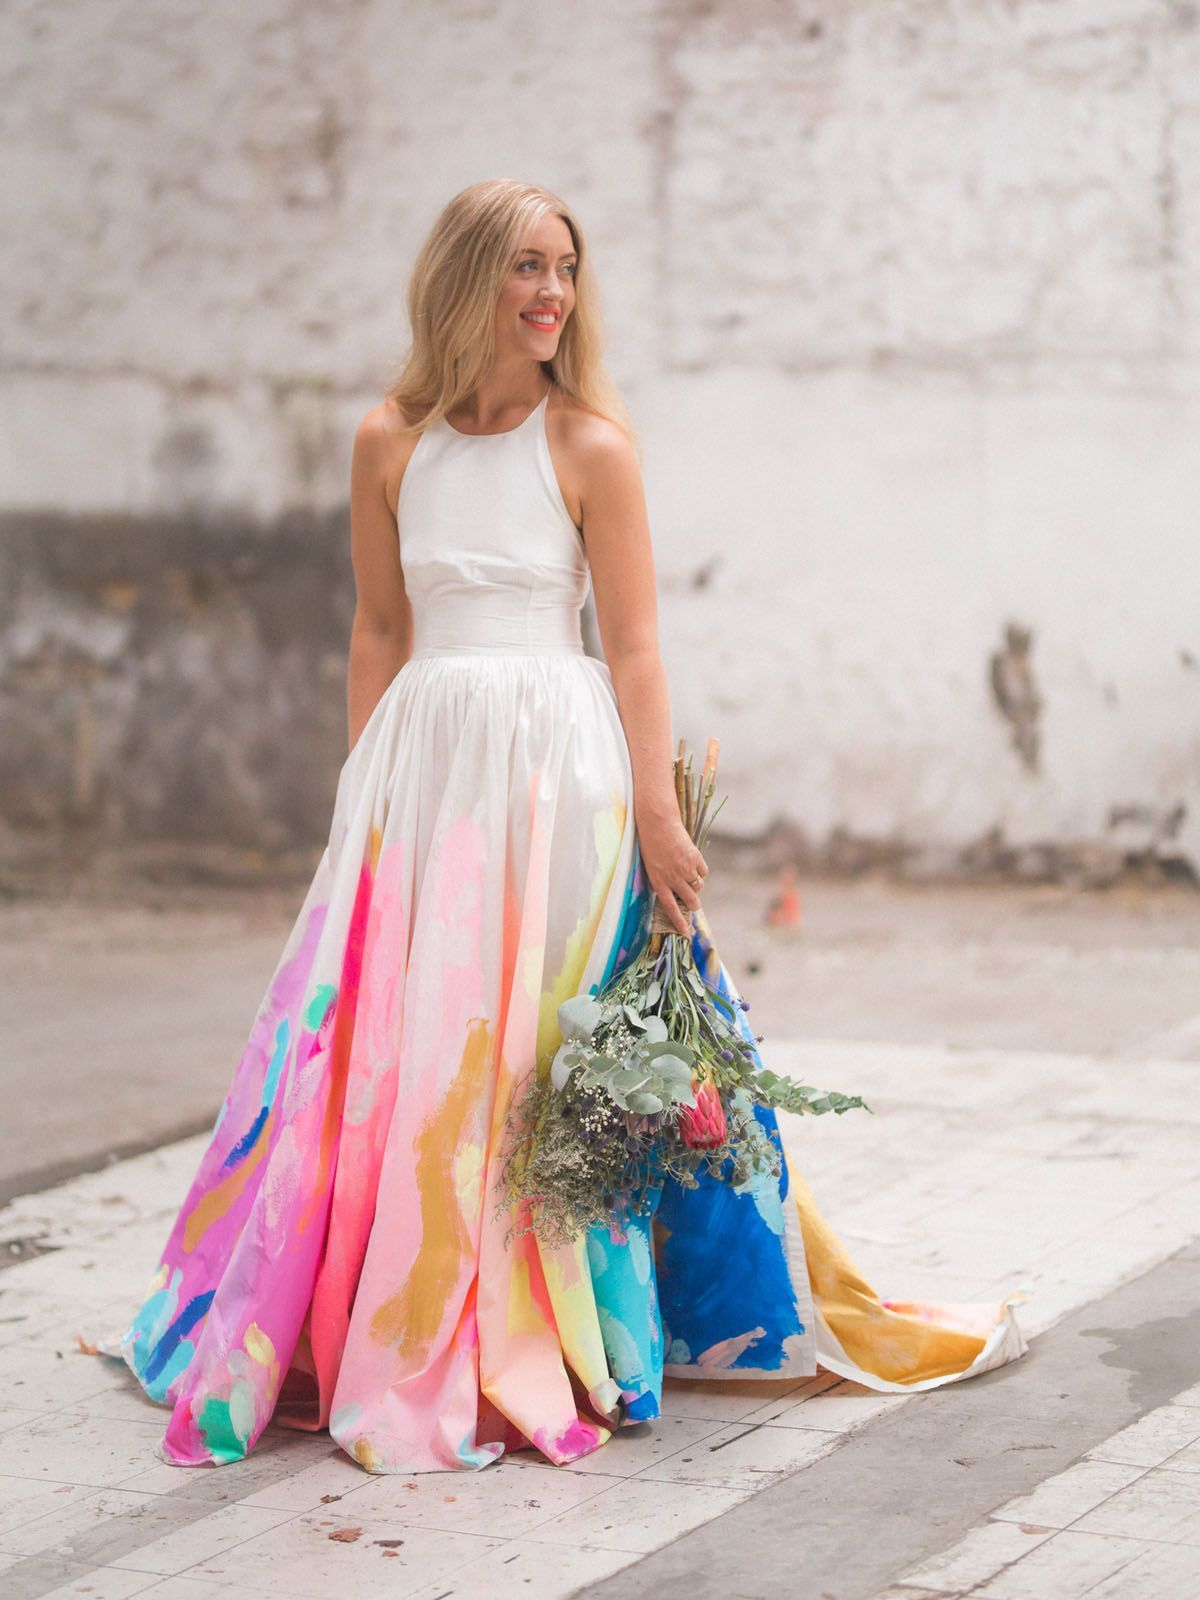 The Bride Wore A Hand Painted Rainbow Wedding Dress Green Shoes Weddings Fashion Lifestyle Trave